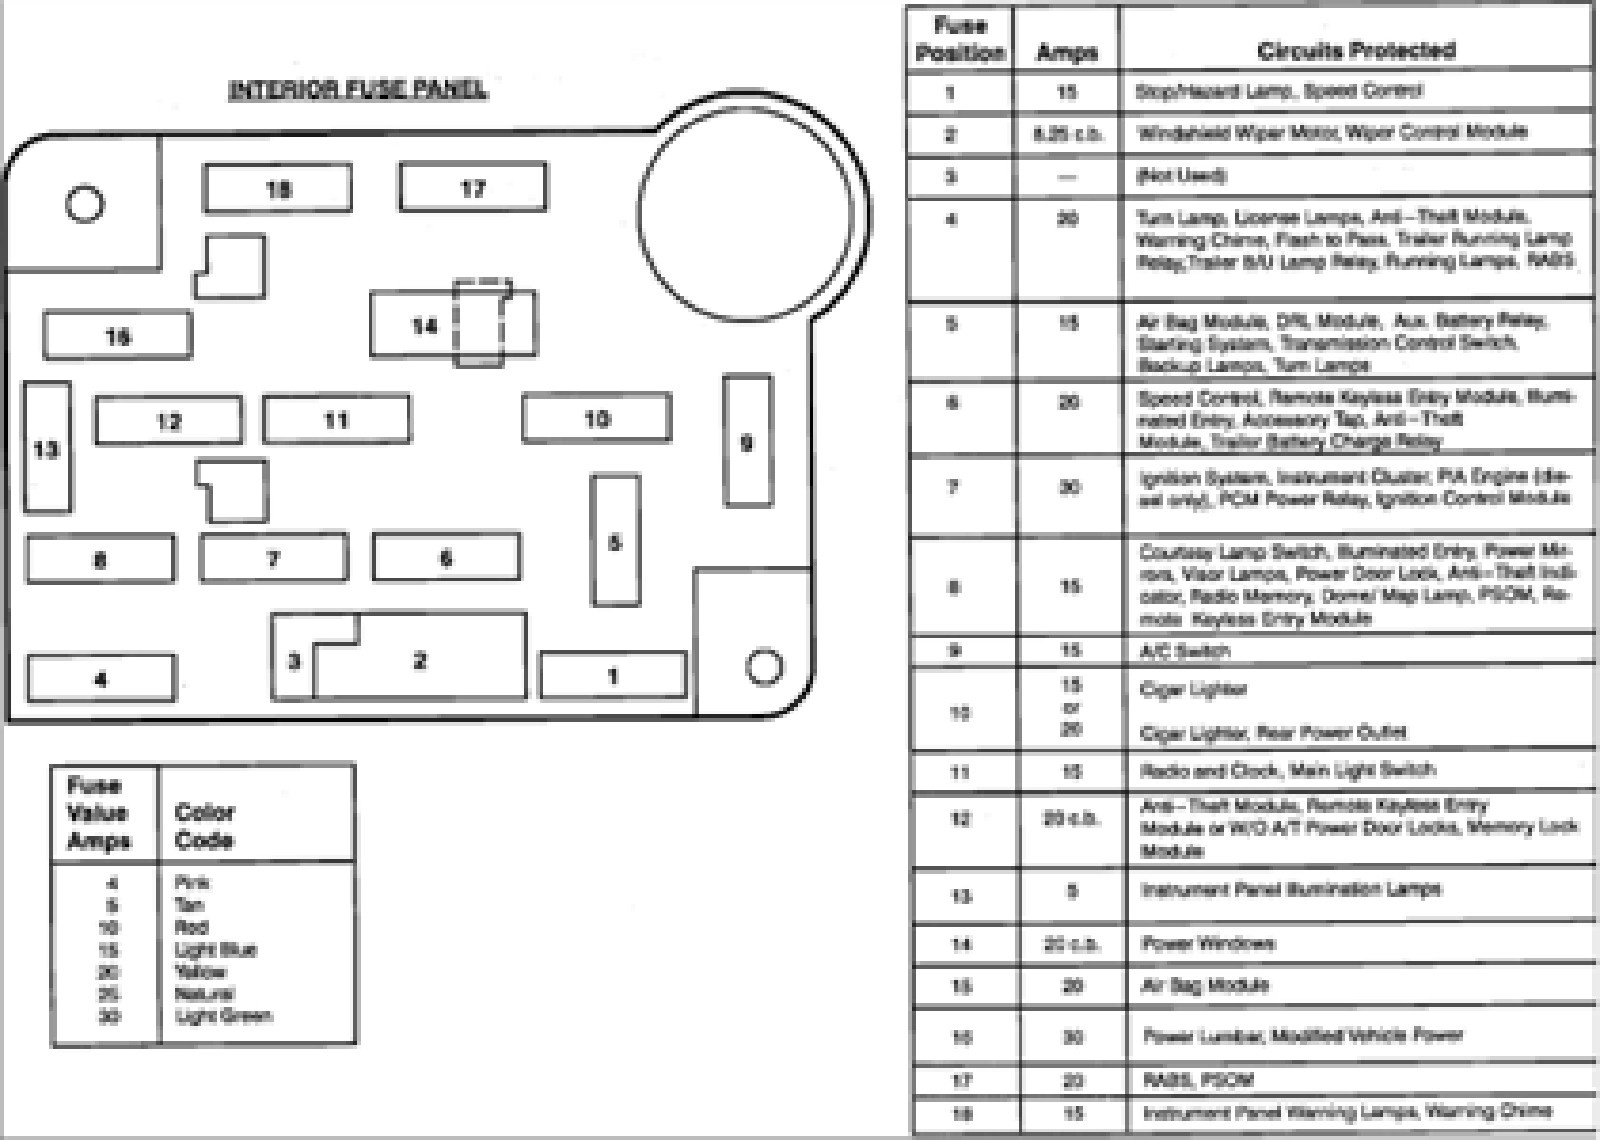 1998 Ford Club Wagon Fuse Diagram | Wiring Diagram Radio Wiring Diagram Ford E on